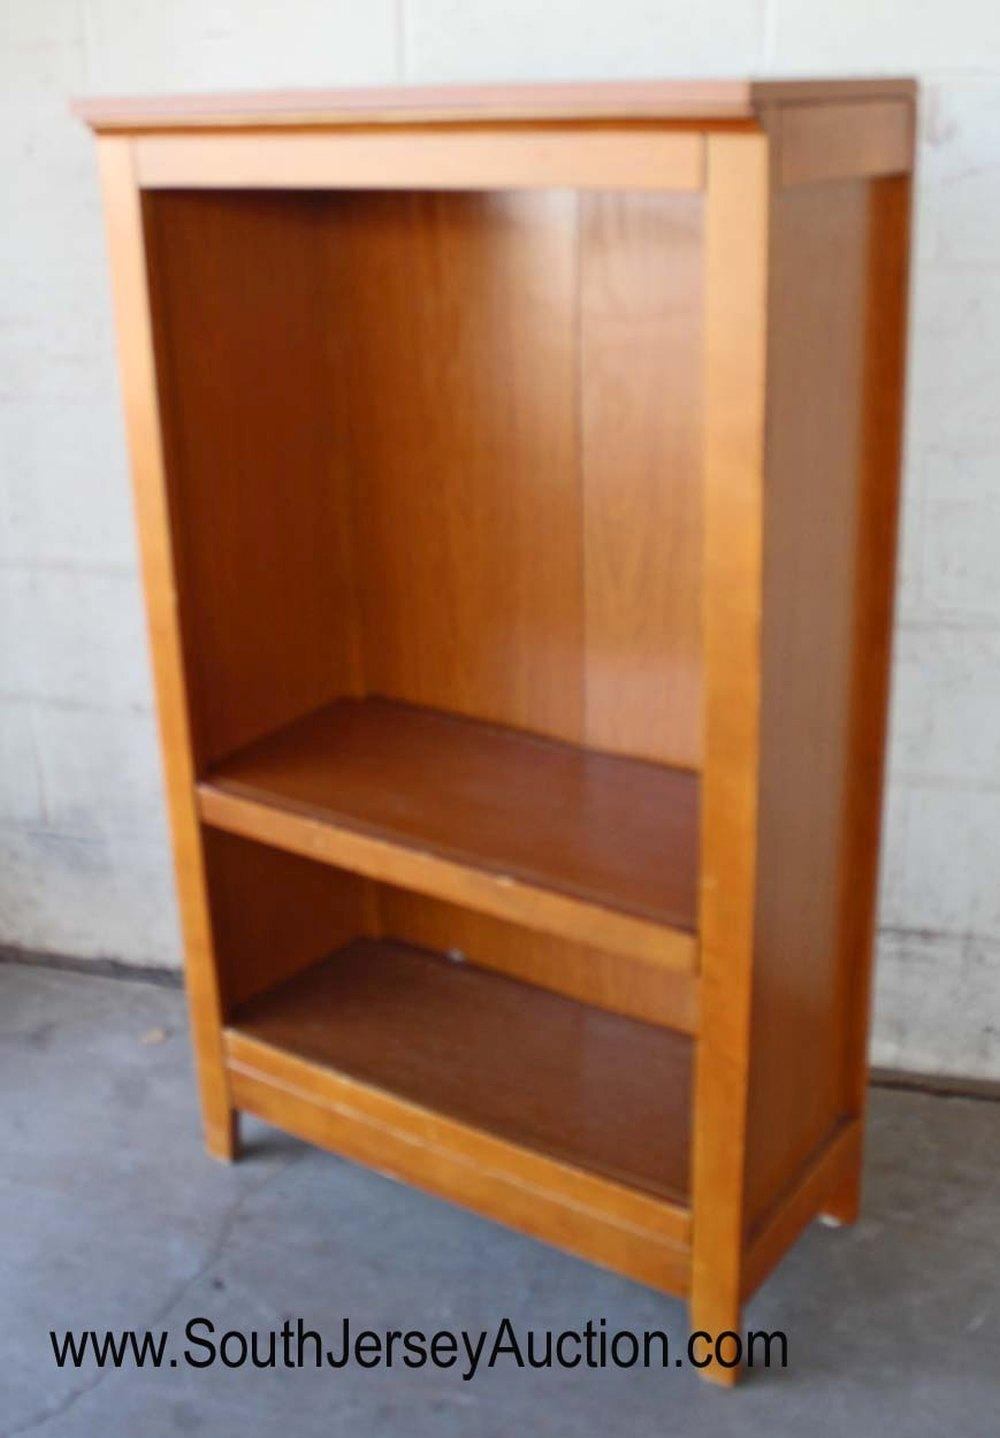 Contemporary Open Front Bookcase in the Maple Finish with Shelves